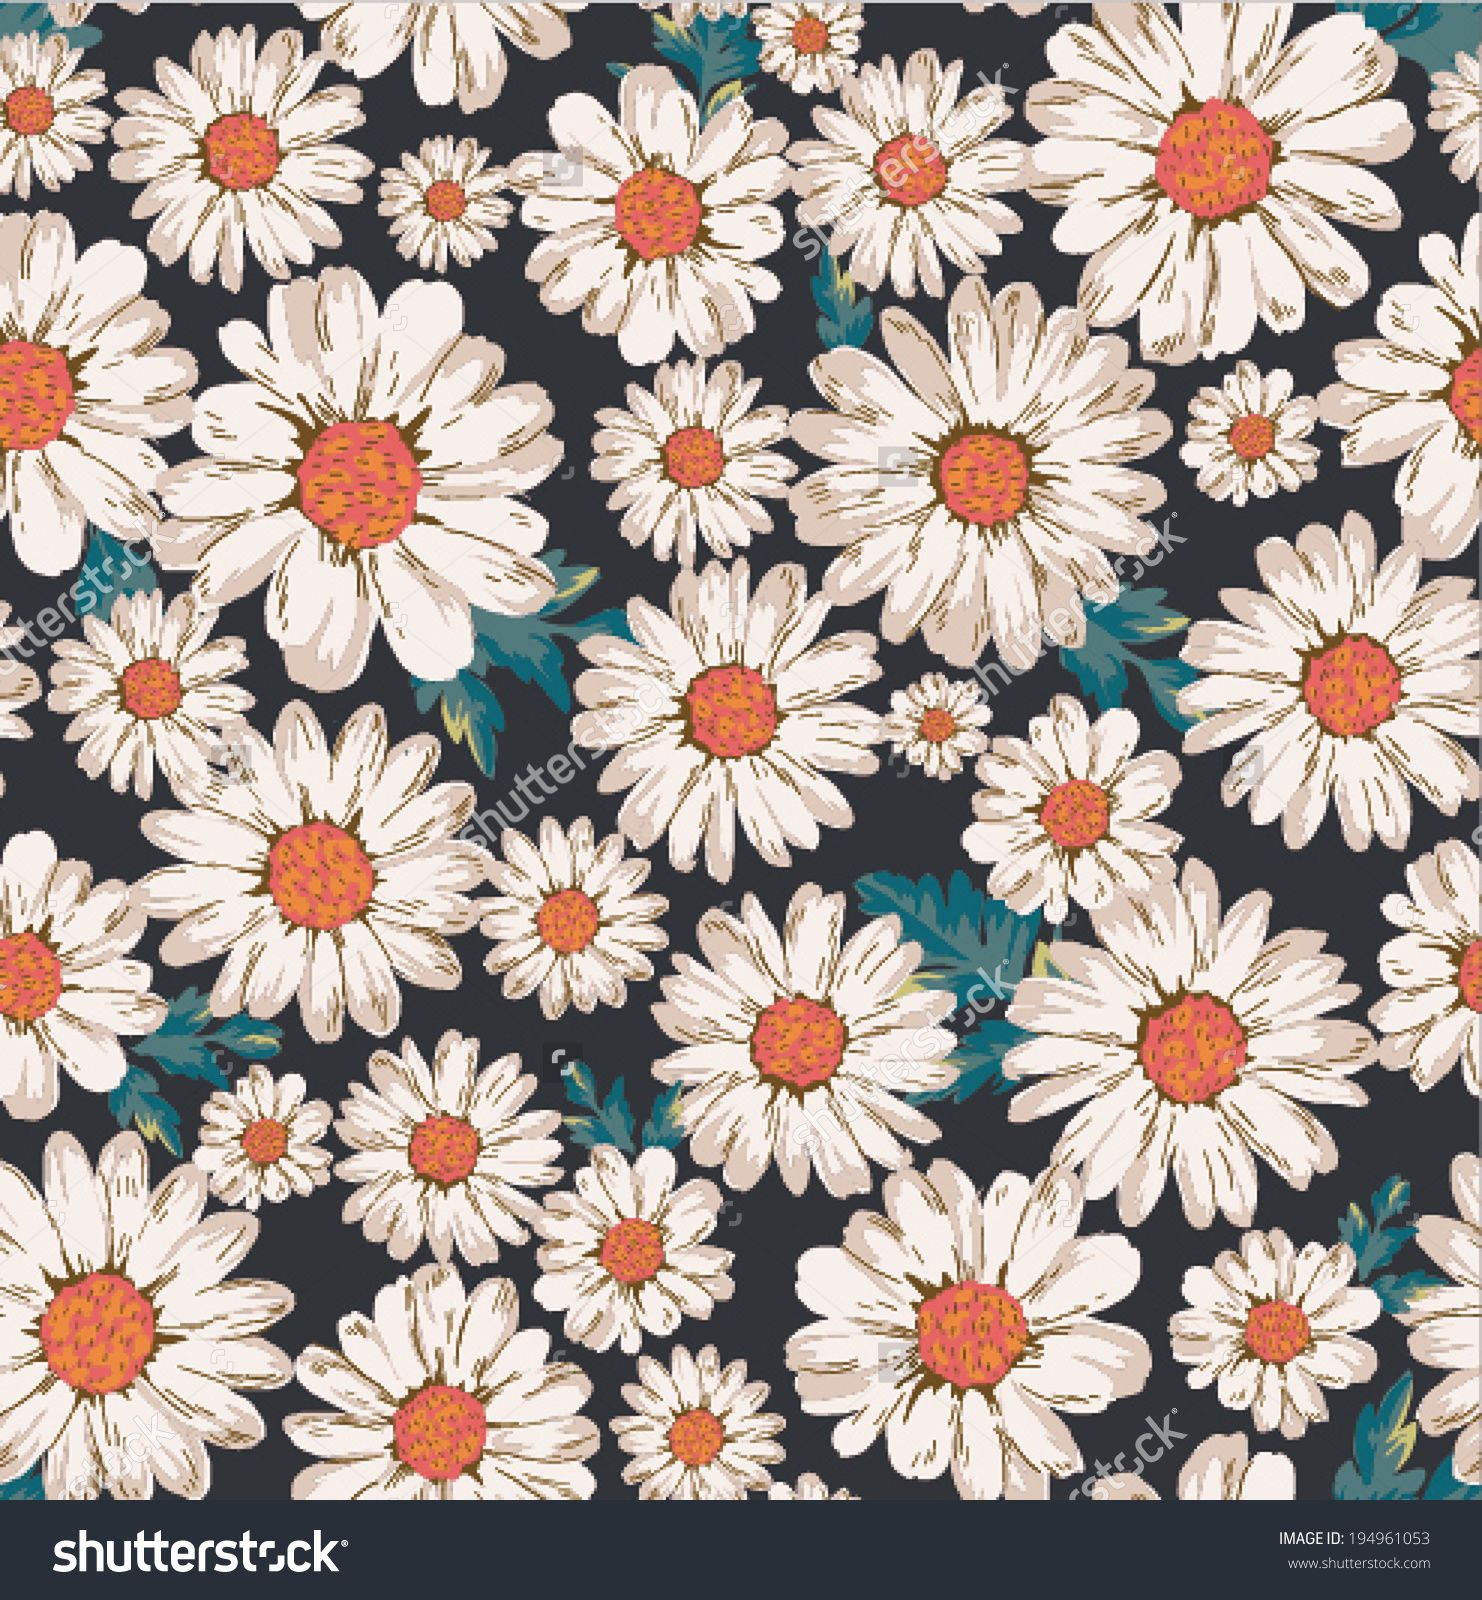 Daisy flowers tumblr wallpaper for iphone zgt aesthetic daisy flowers tumblr wallpaper for iphone zgt izmirmasajfo